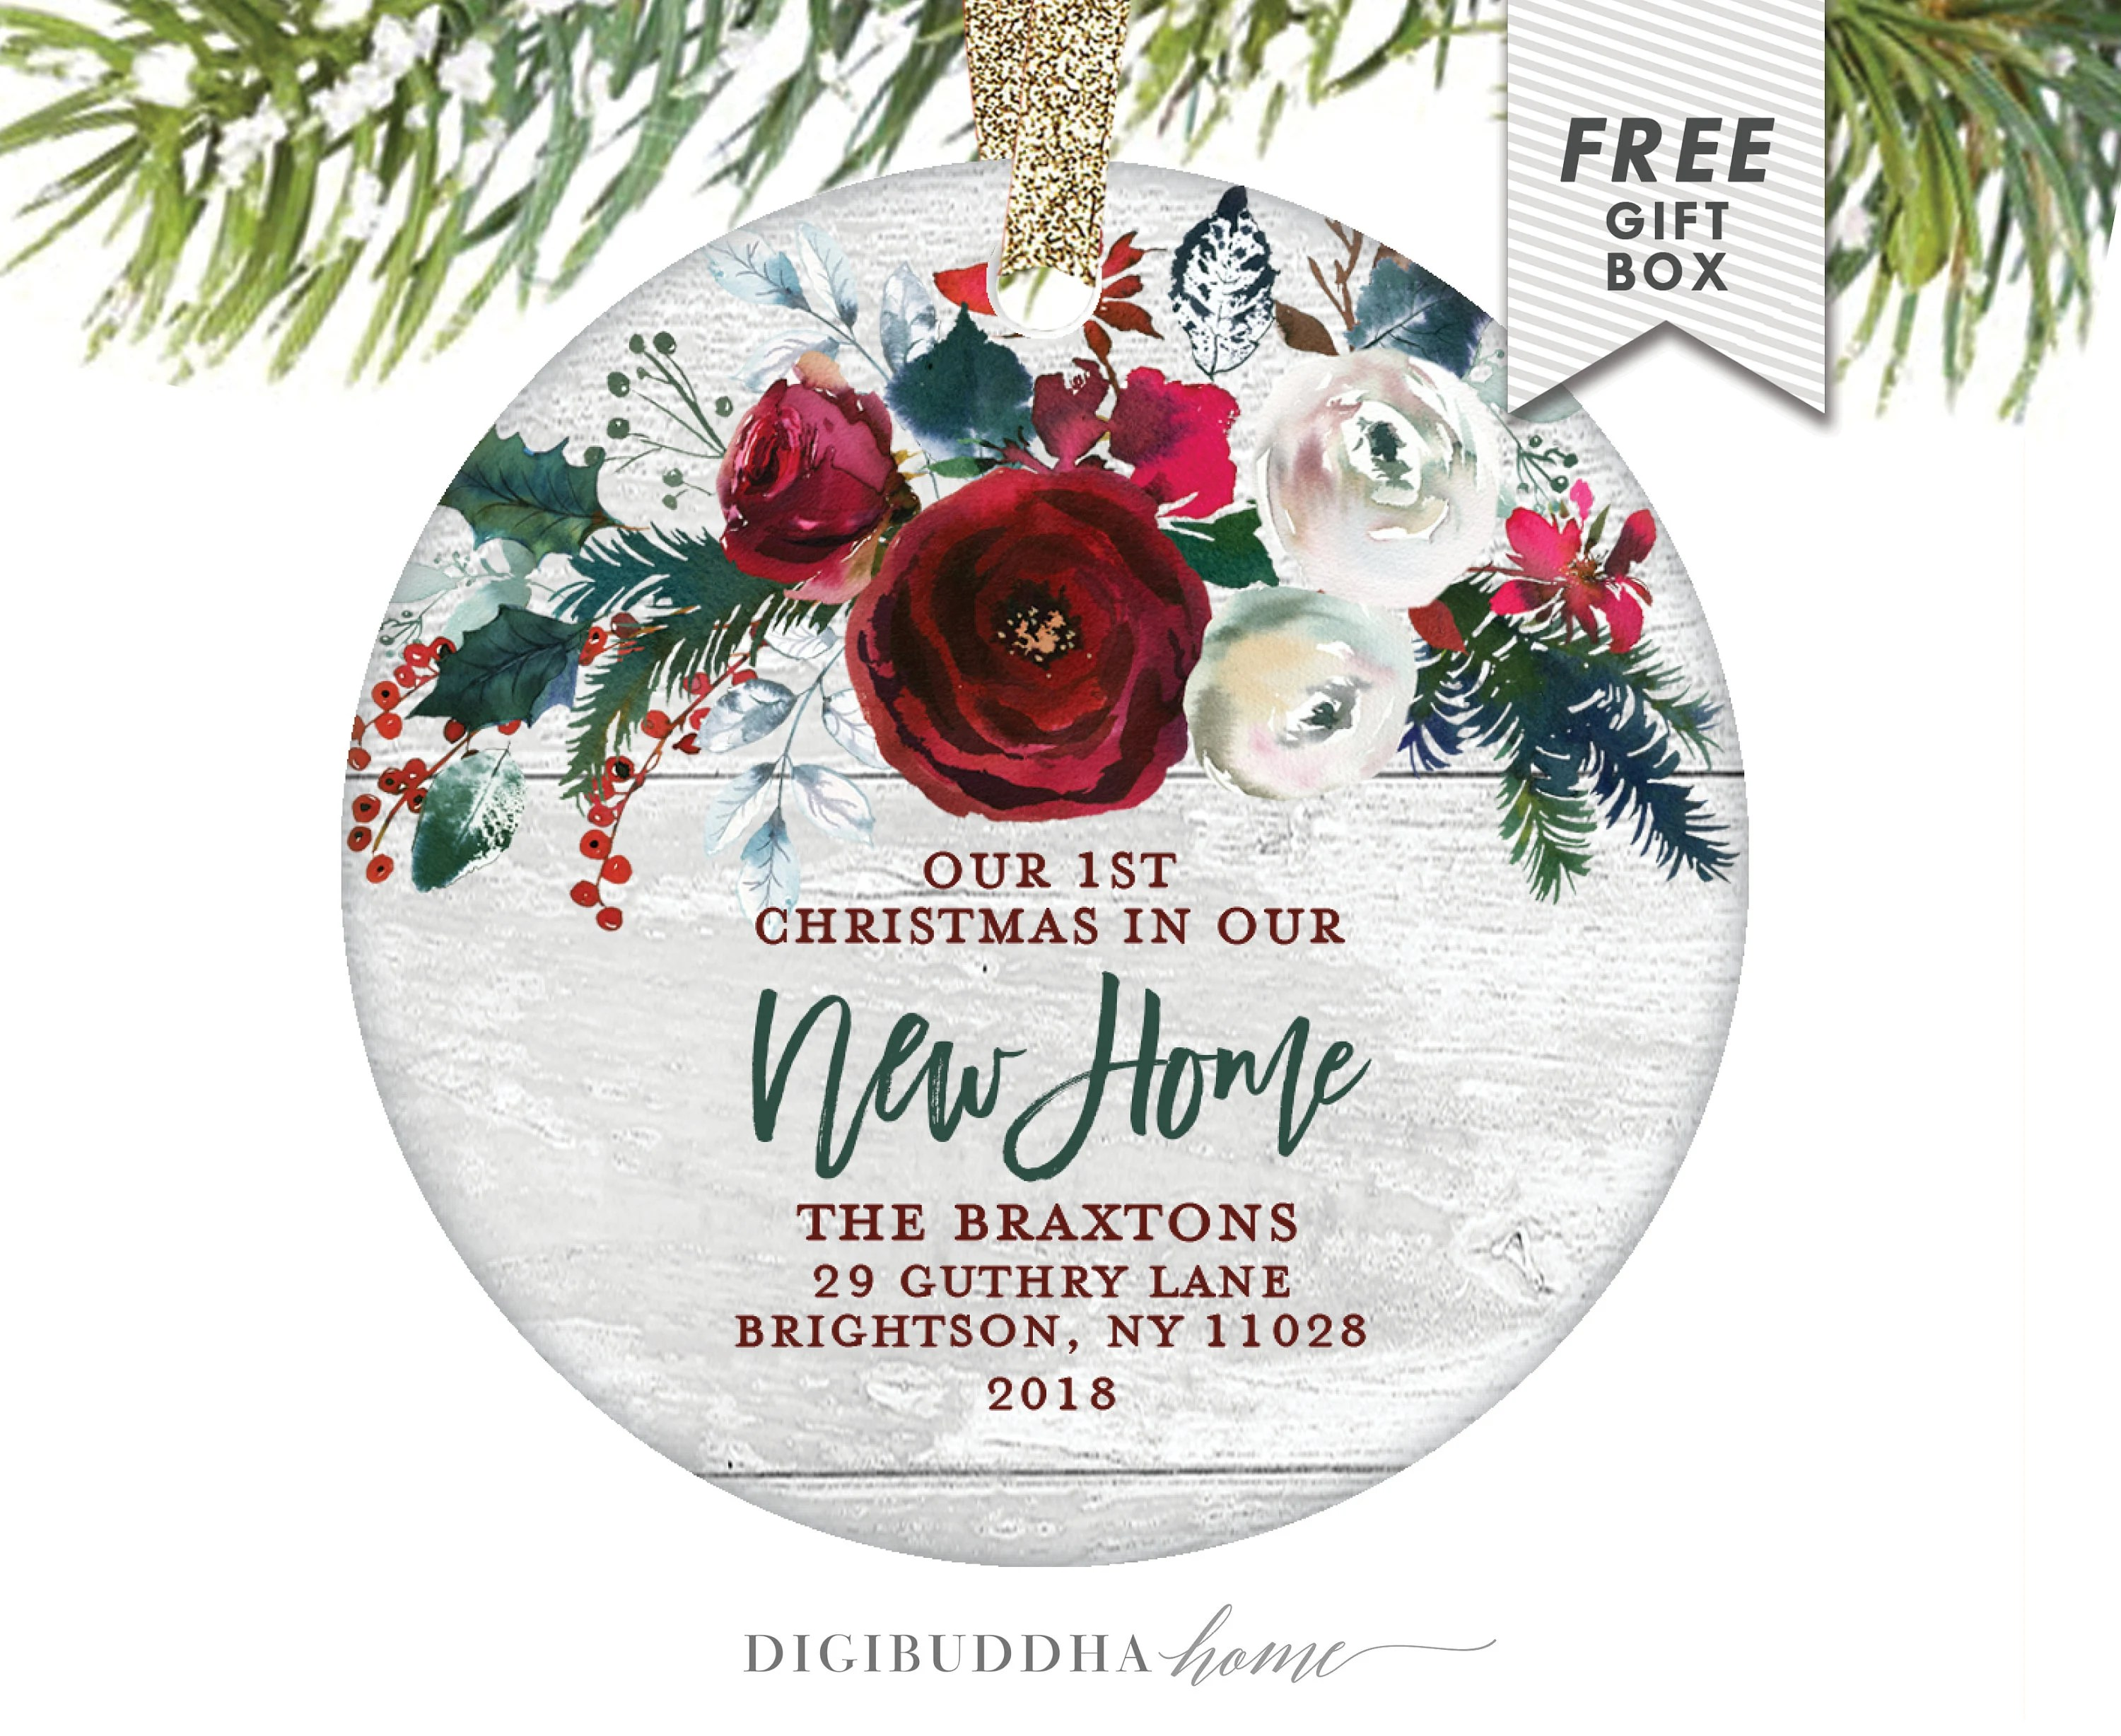 Gift Ideas For New Homeowner New Homeowner Gift Ideas Our 1st Christmas In Our New Home